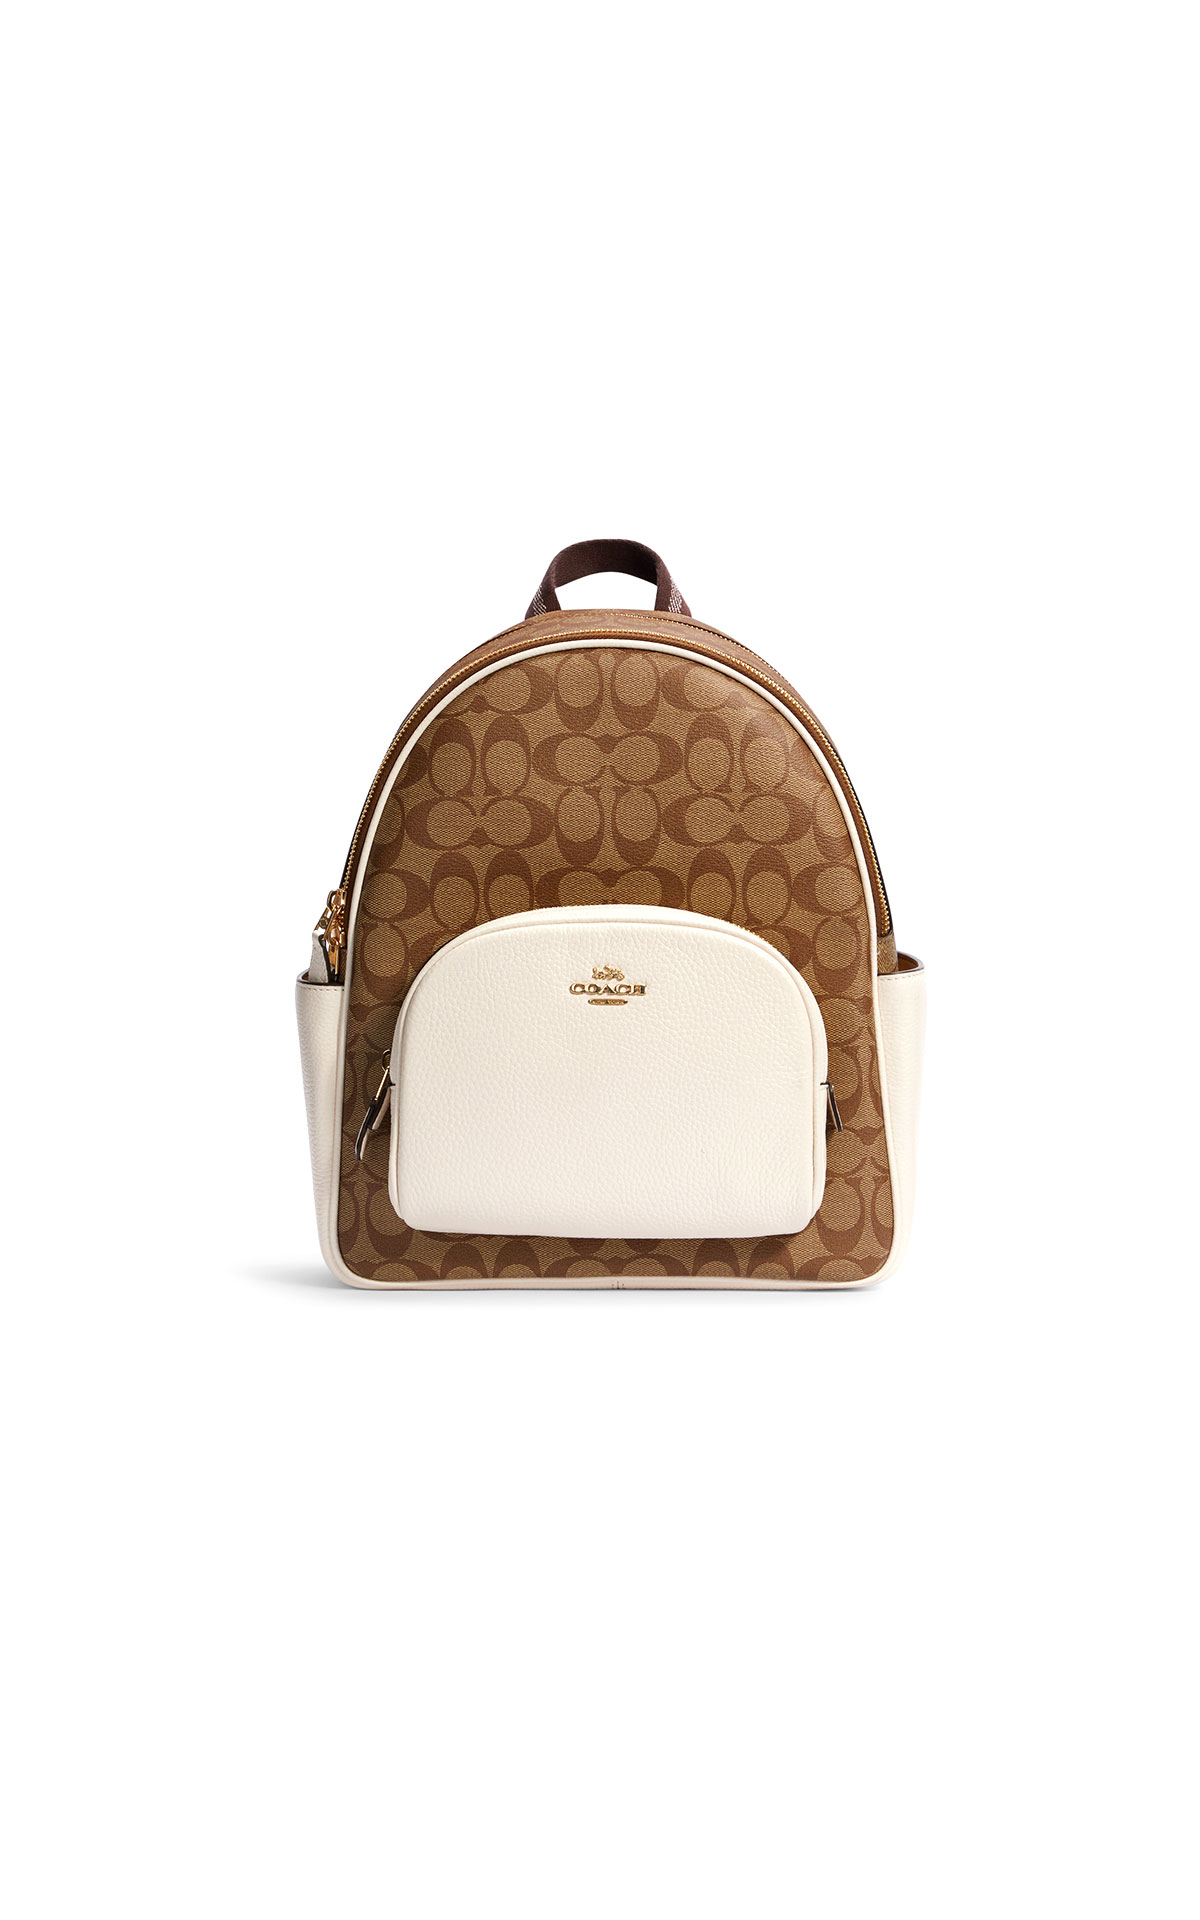 Coach signature court backpack